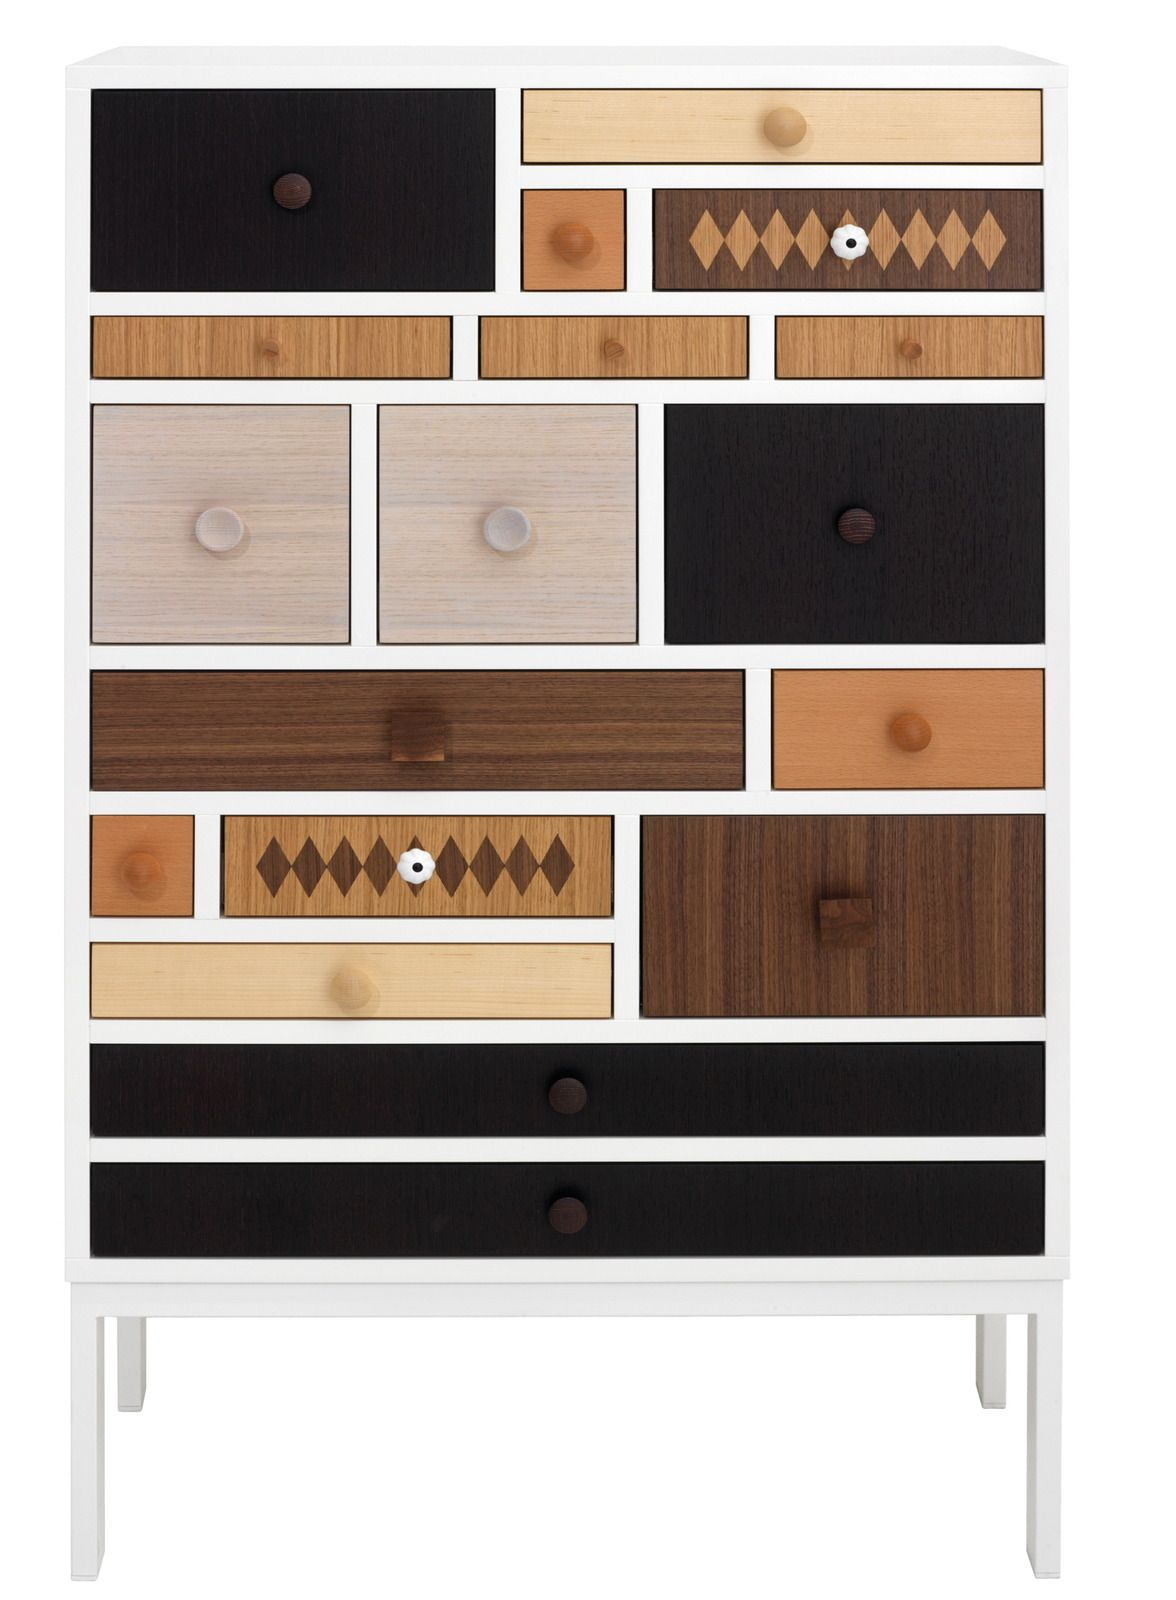 Wis design for schoenbuch interior design pinterest consoles spaces and backyard - Frank boca do lobo chest of drawers style and functionality ...